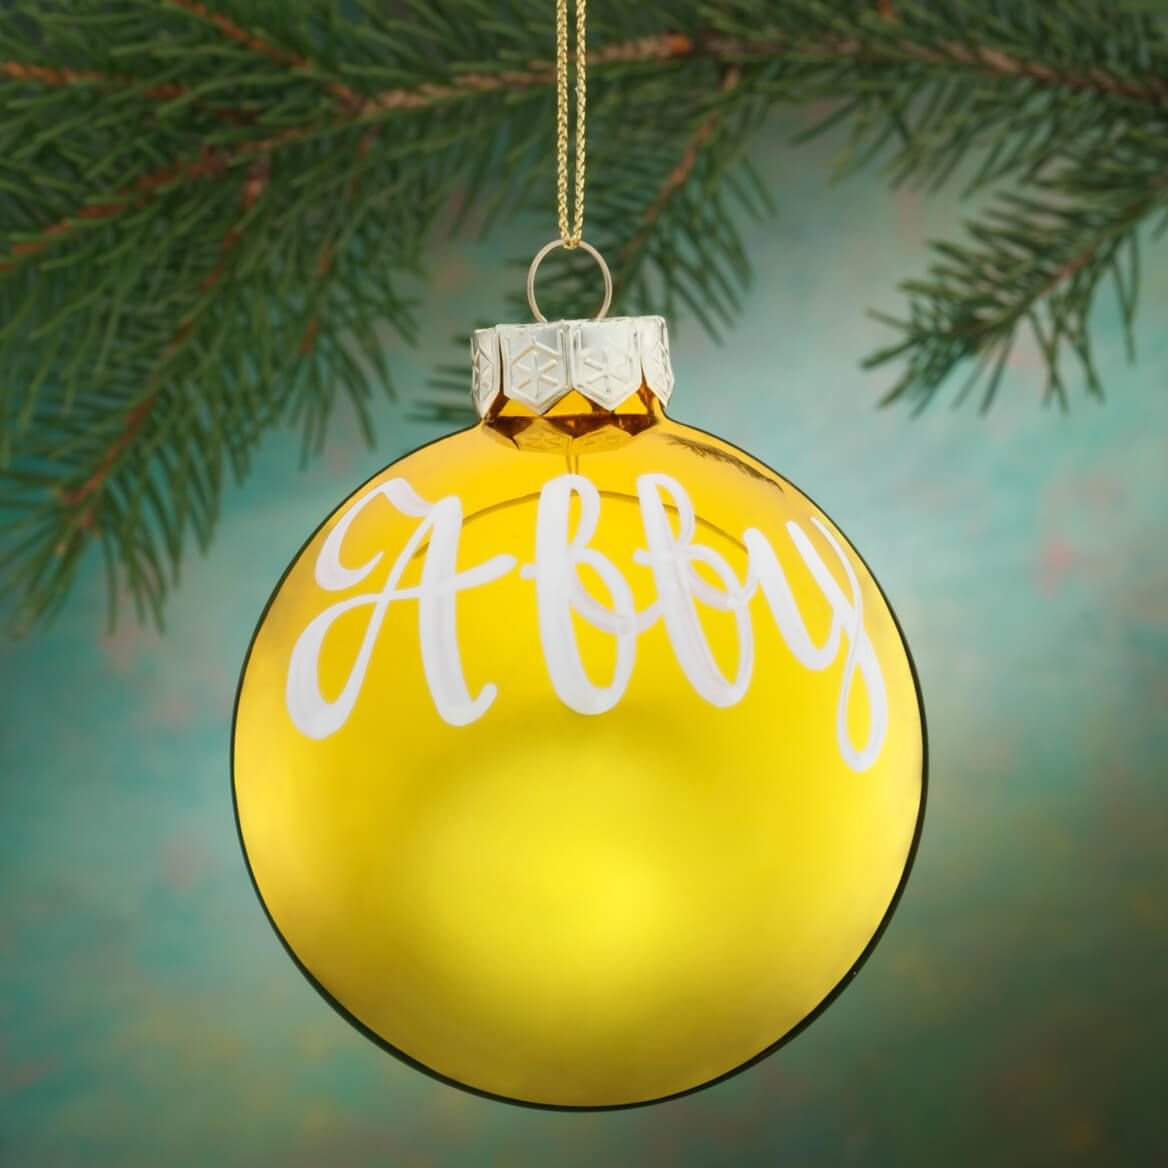 Personalized Name OR Date Painted Ornament-330369